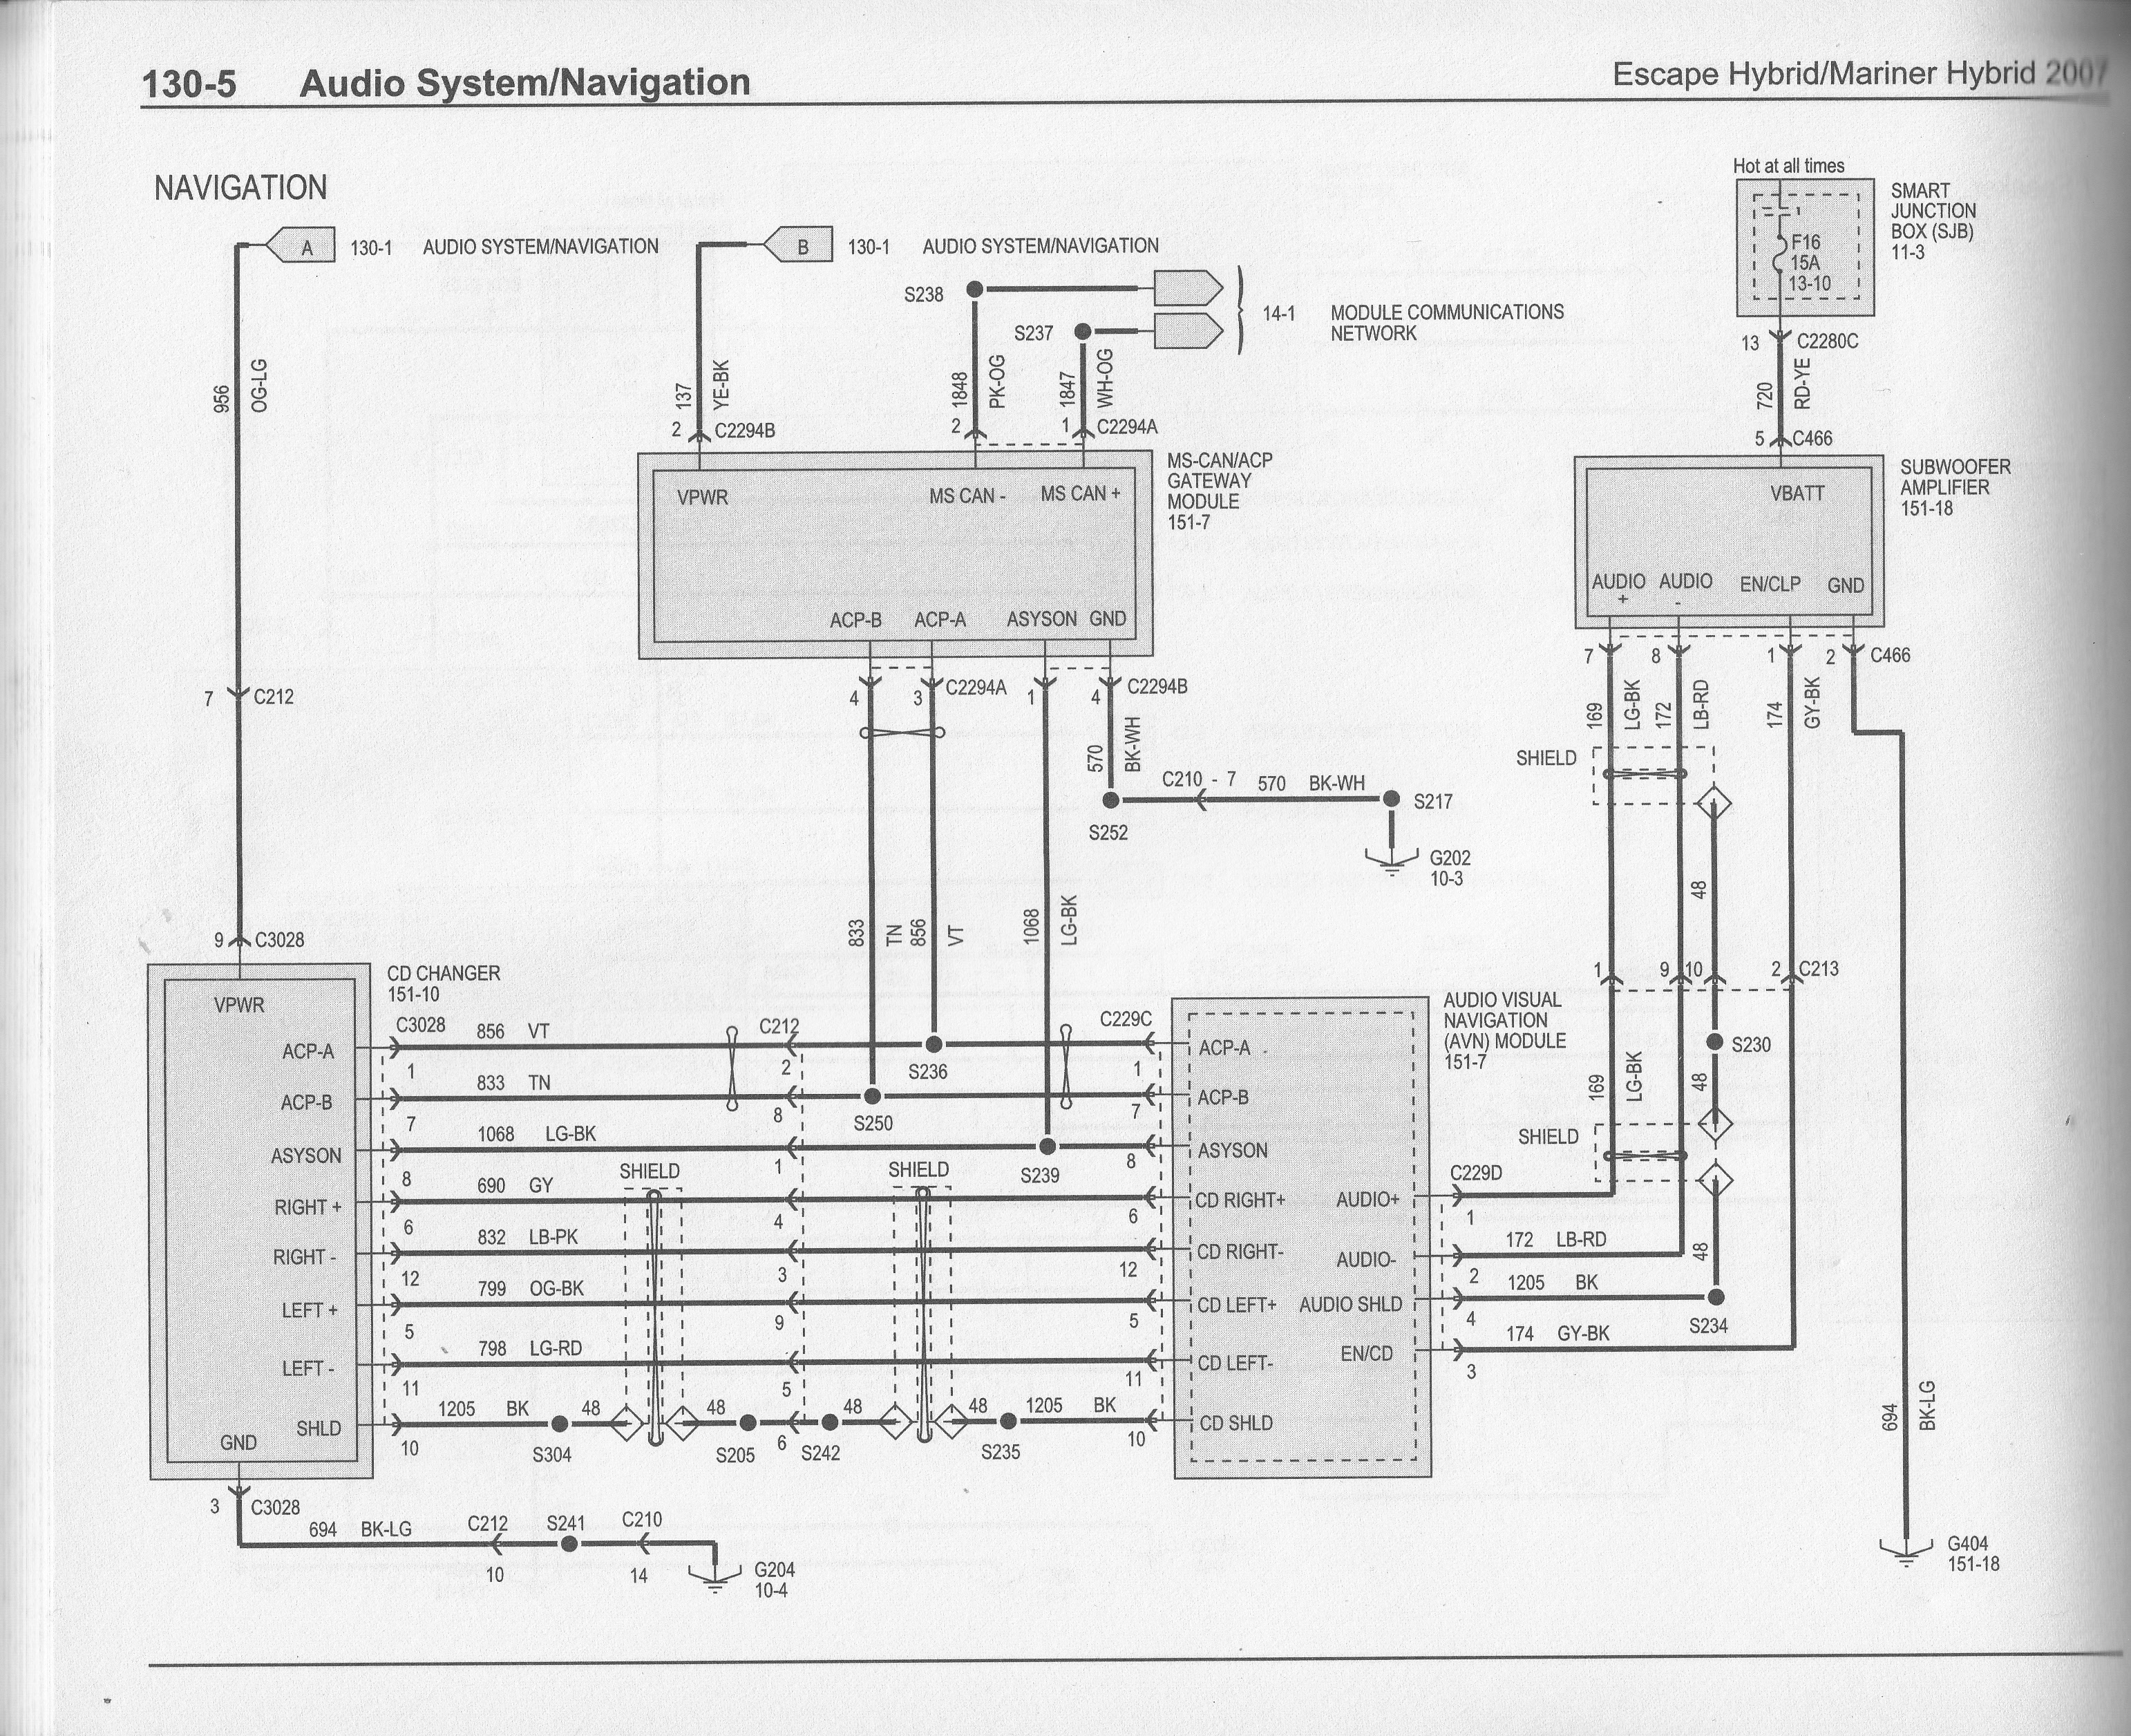 97 Ford Explorer Power Window Wiring Diagram | Wiring Diagram  Ford Explorer Engine Diagram on 97 chrysler cirrus engine diagram, ford 4.0 sohc engine diagram, 1997 ford 5.8 engine diagram, 97 dodge ram 1500 engine diagram, 1997 ford explorer brake diagram, 2007 sport trac transmission line diagram, 97 jeep grand cherokee engine diagram, 97 buick park avenue engine diagram, 97 pontiac grand am engine diagram, 2008 ford expedition heater hose diagram, 1997 ford 4.0 engine diagram, 97 ford explorer lose power, 97 ford explorer radio wiring, 97 ford wiring diagram, 2005 ford explorer belt diagram, ford explorer motor diagram, 1996 ford 3.8 engine diagram, 97 ford explorer speedometer, ford 7.3 powerstroke diesel engine diagram, 97 geo prizm engine diagram,